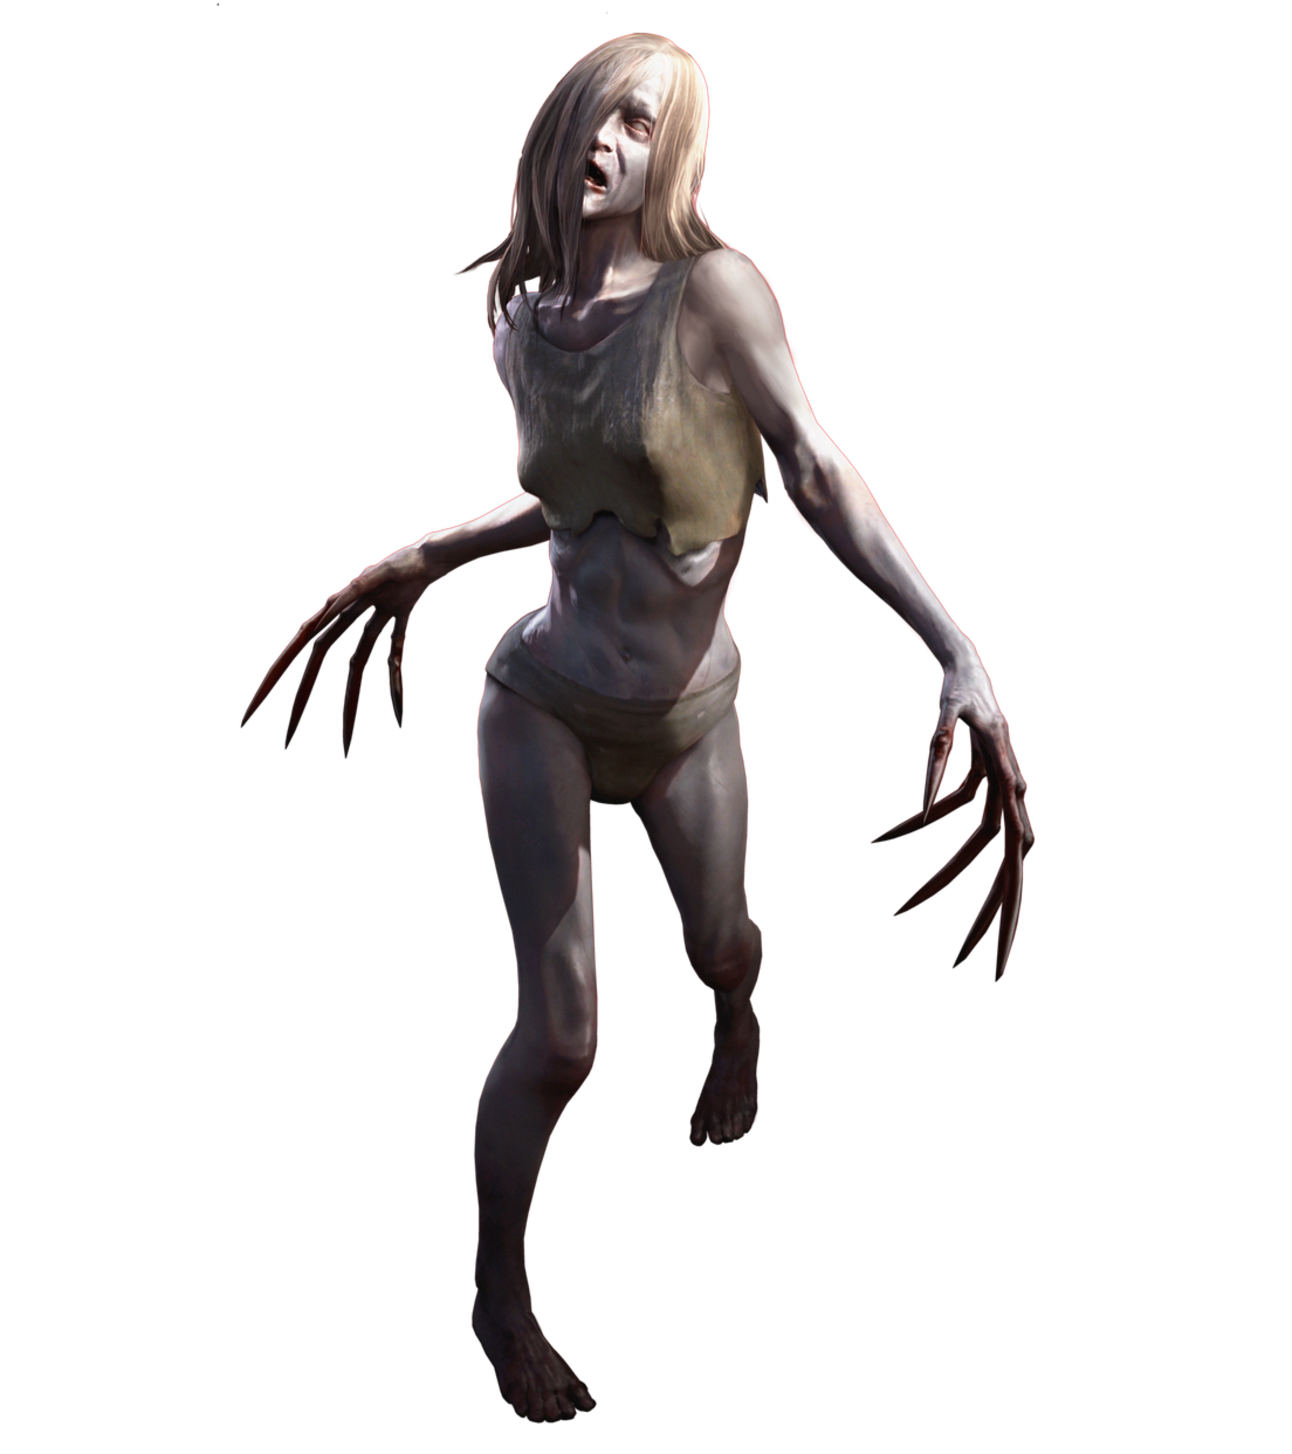 693123758_preview_RE6PC_x_L4D2_The_Witch.png